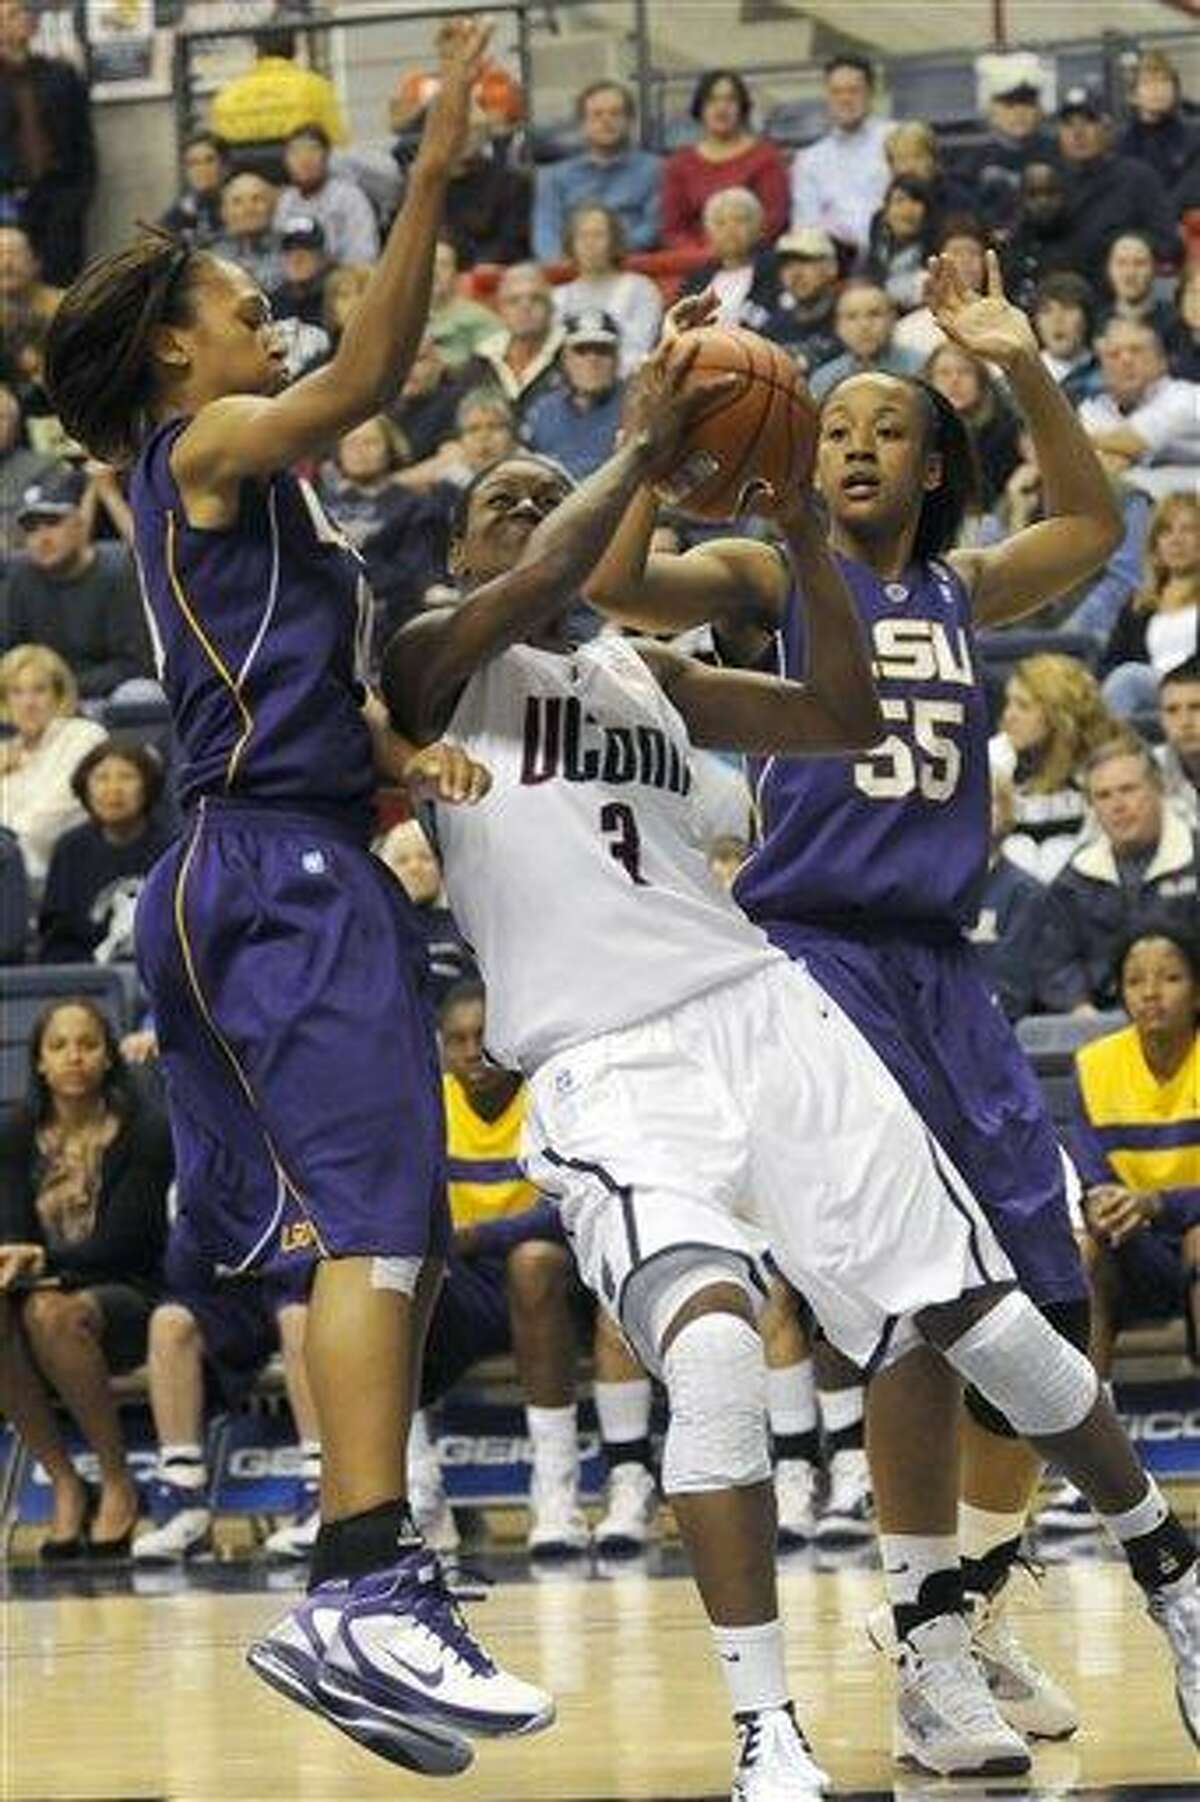 LSU's Adrienne Webb, left, and LaSondra Barrett, right, try to block Connnecticut's Tiffany Hayes as Hayes took a shot in the first half of their NCAA women's basketball game at Storrs, Conn., Sunday, Nov. 28, 2010. (AP Photo/Bob Child)